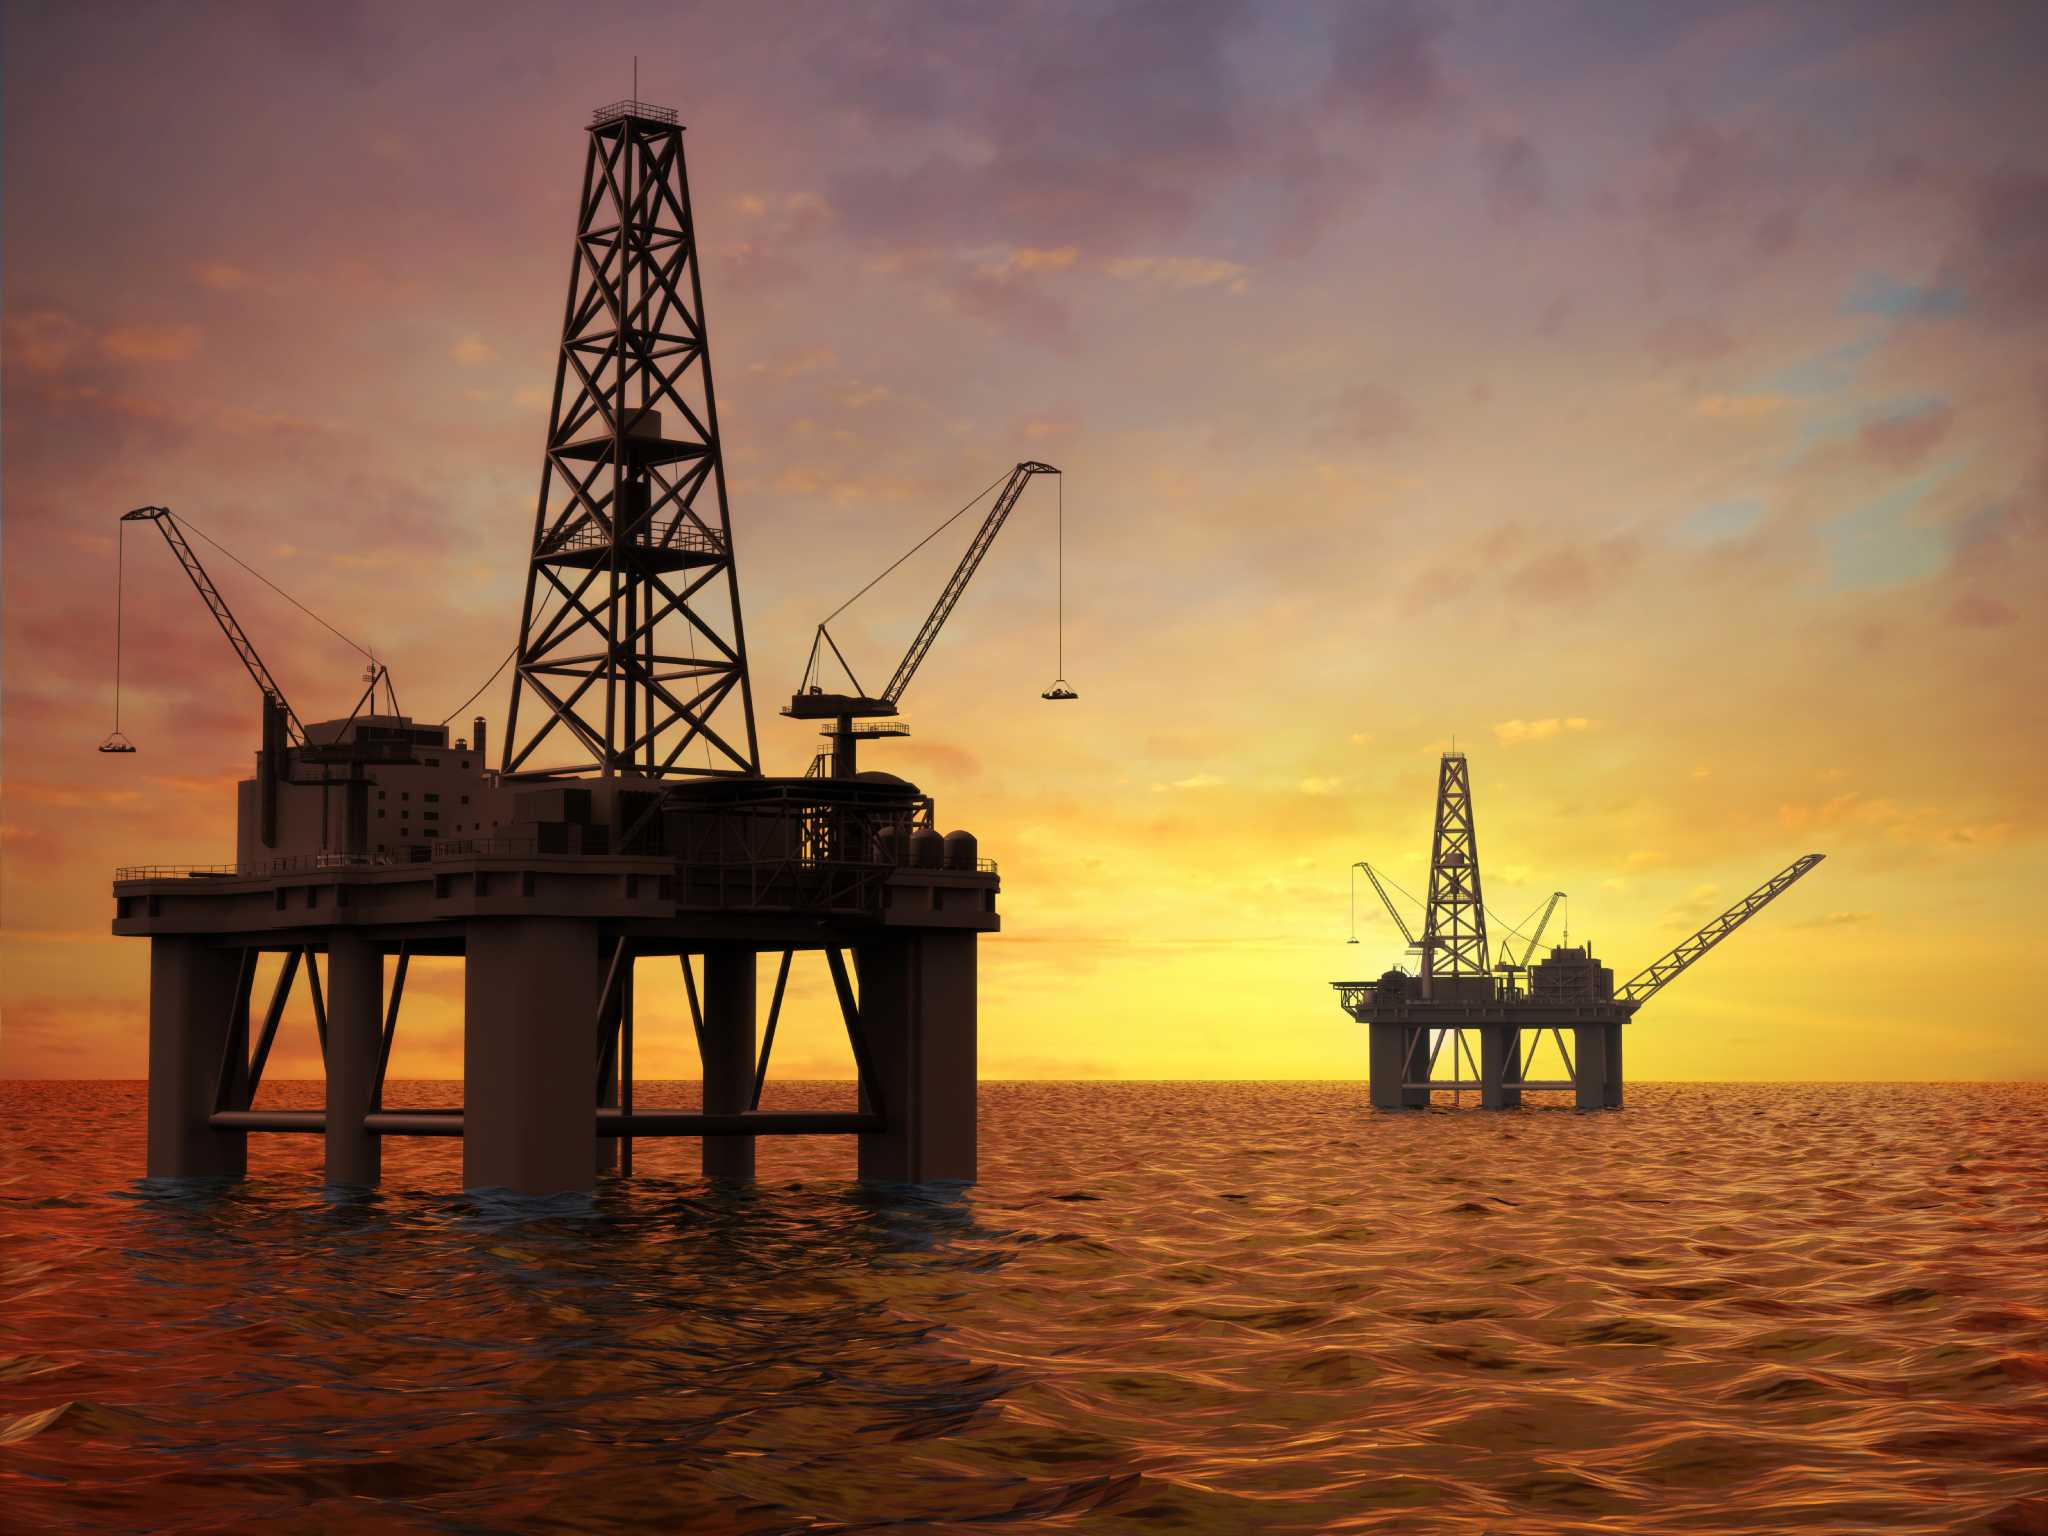 malware on oil rig computers raises security fears